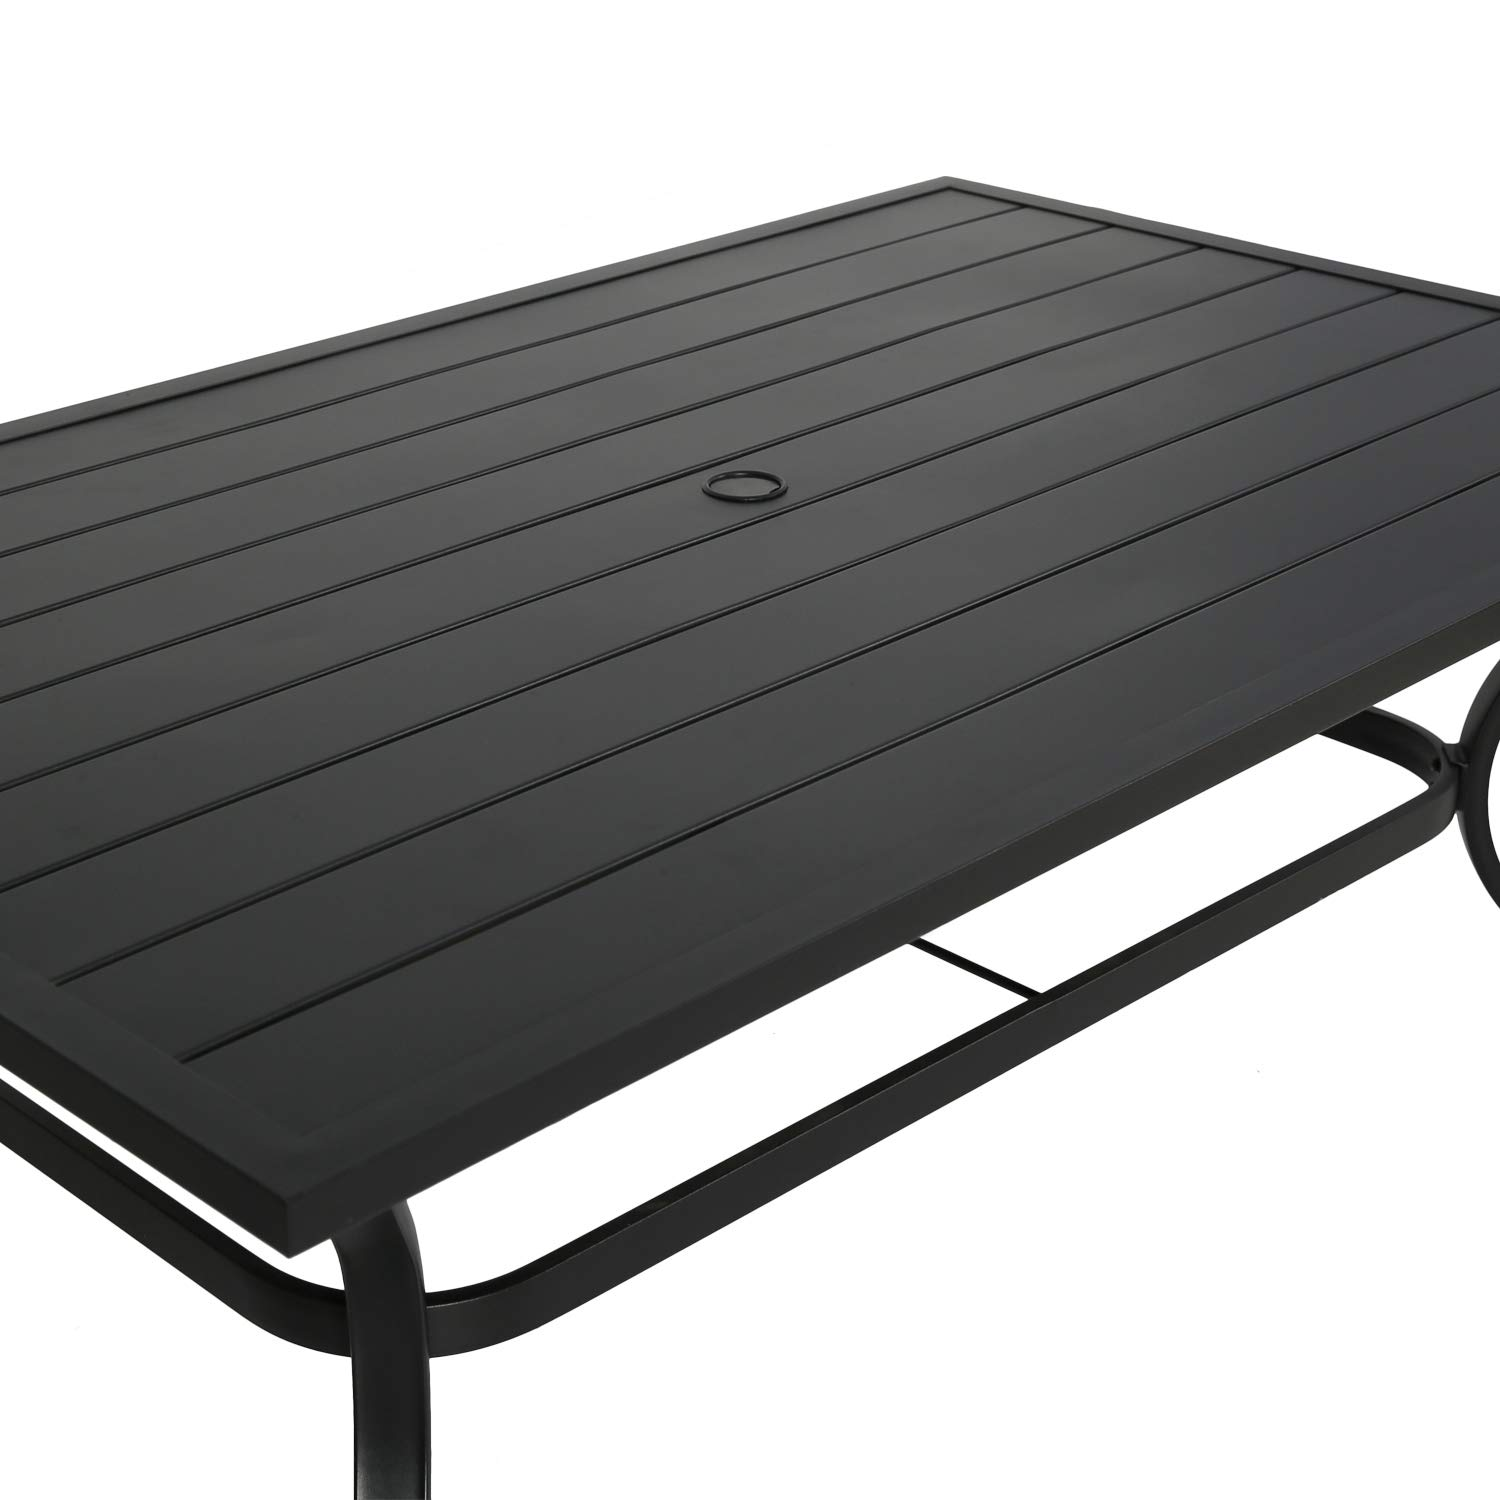 Ulax furniture Outdoor Patio Rectangular Slatted Dining Table with Umbrella Hole, Classic Black